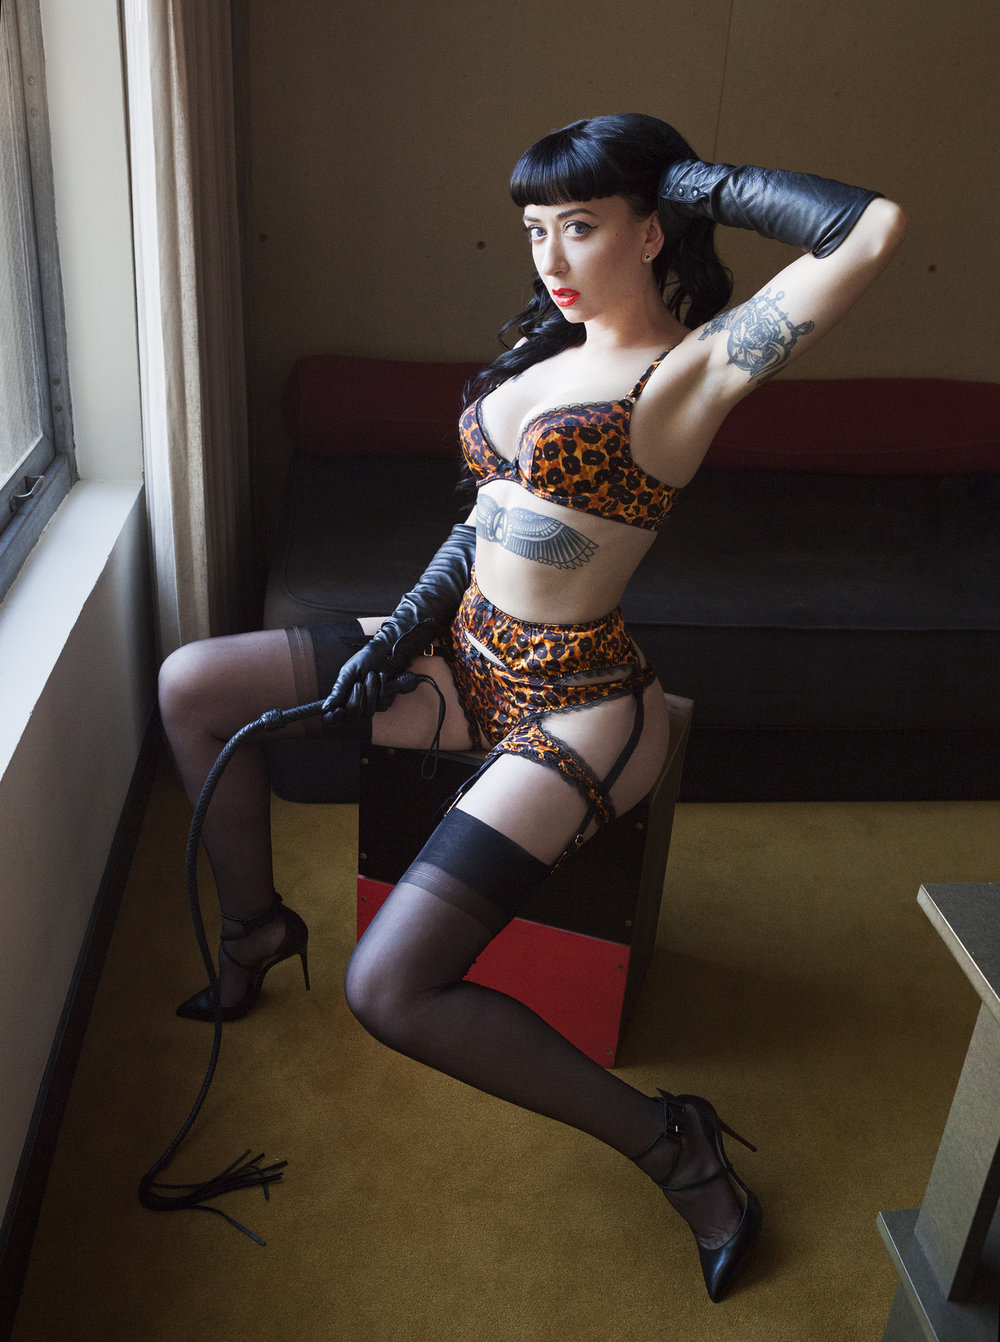 Mistress Ramona Ryder San Francisco Oakland Elite Upscale Exclusive Kink Fetish Escort Dominatrix